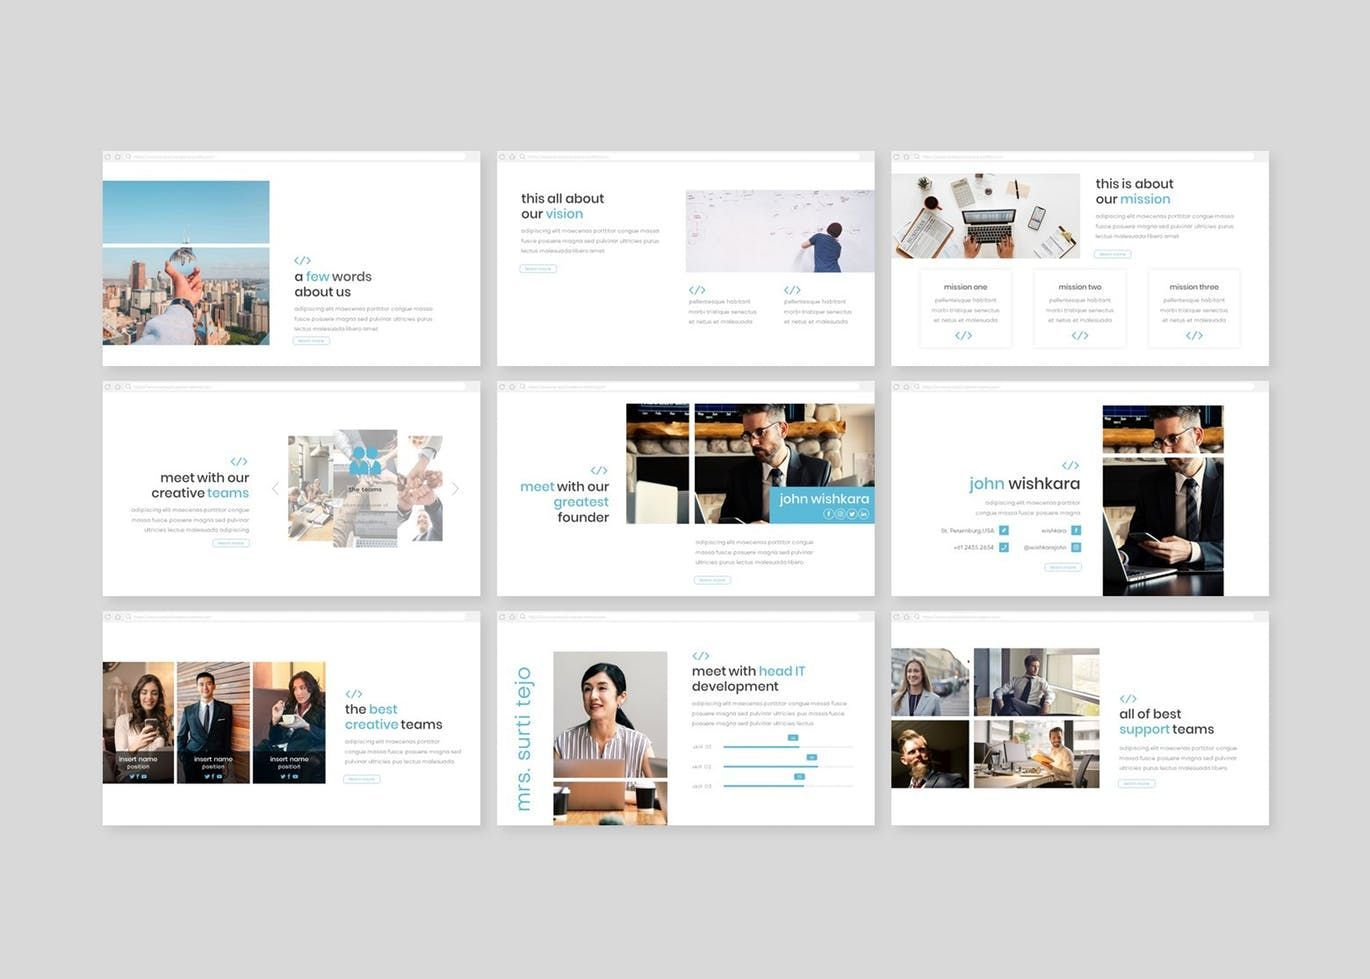 Syntax - PowerPoint Template, Slide 3, 08307, Presentation Templates — PoweredTemplate.com